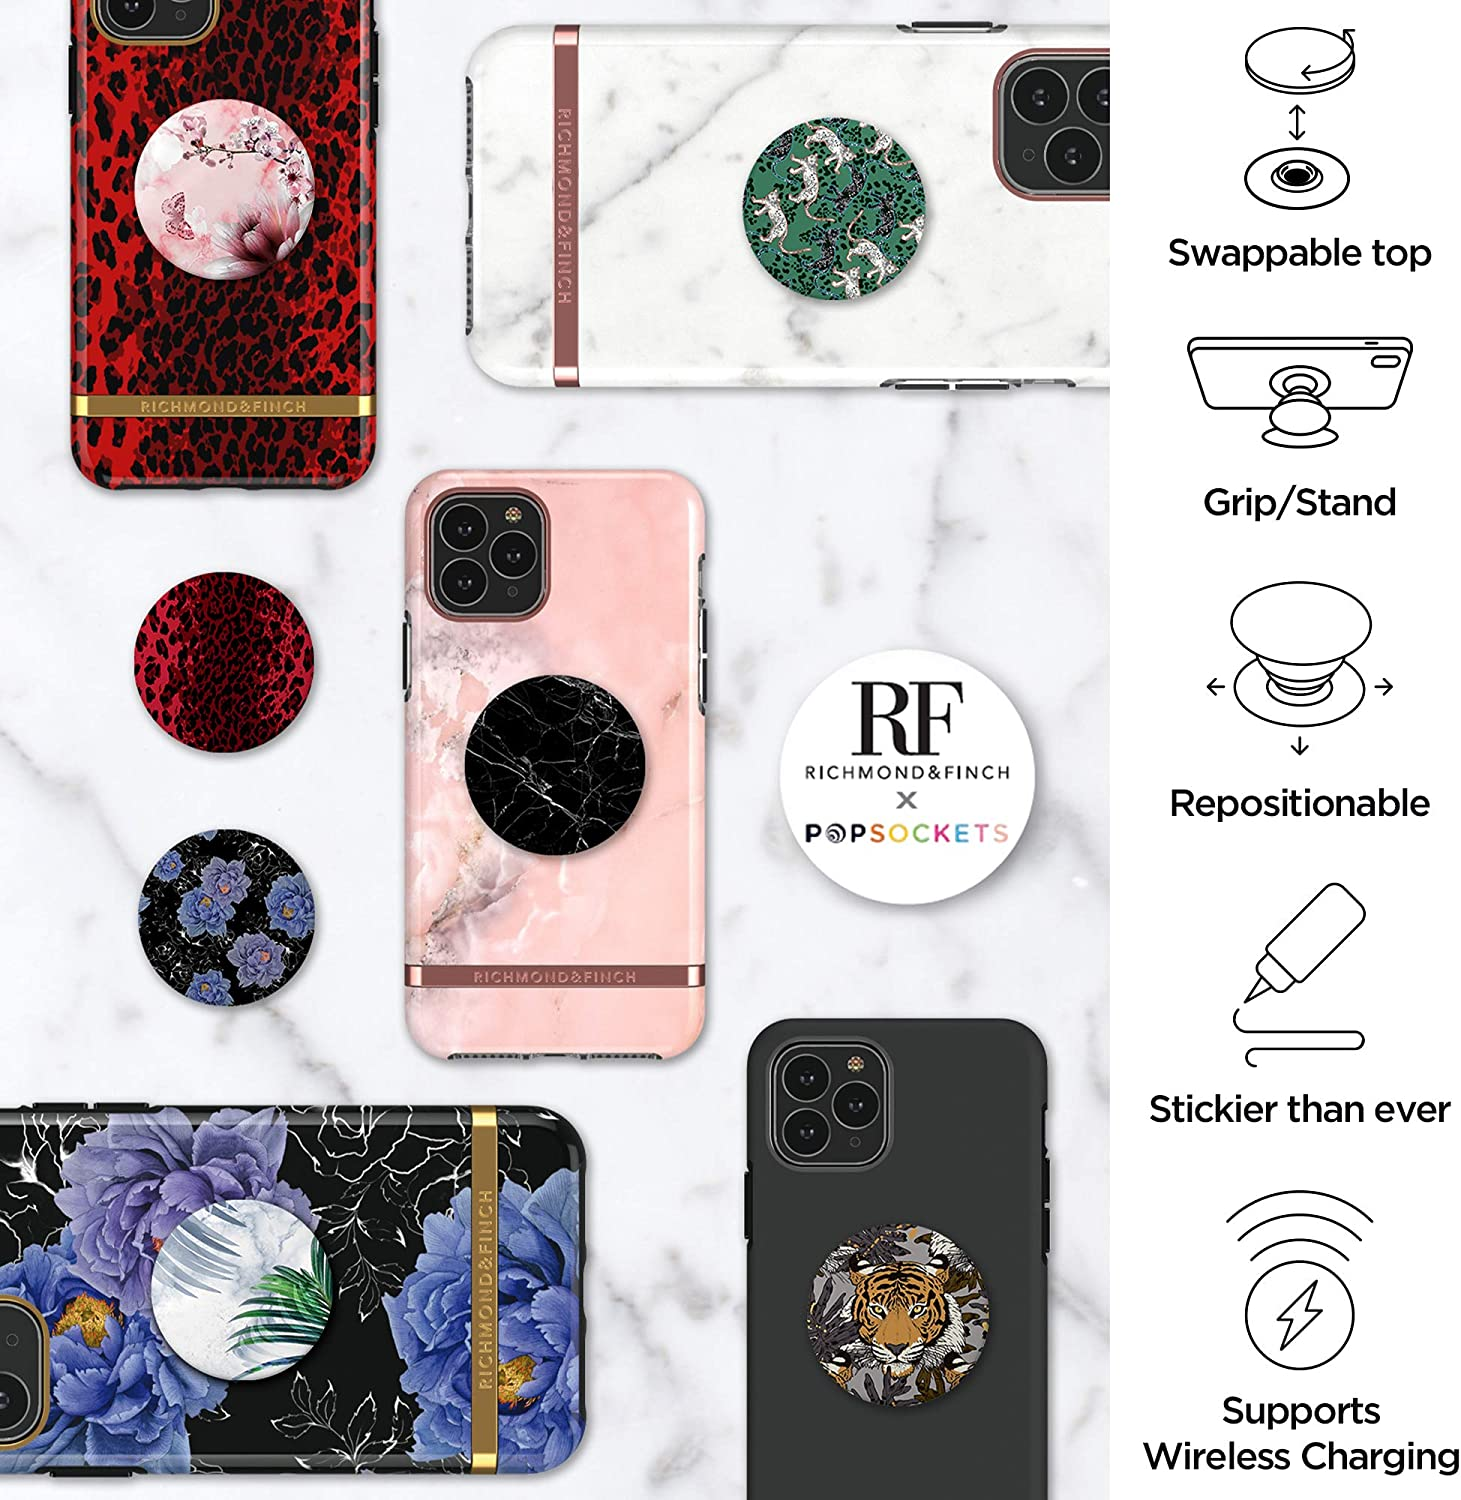 Richmond & Finch PopSocket PopGrip, Universal Expanding Mobile Phone Stand and Grip for Phones and Tablets, Includes Swappable Top, Pink Marble Floral: Amazon.es: Electrónica